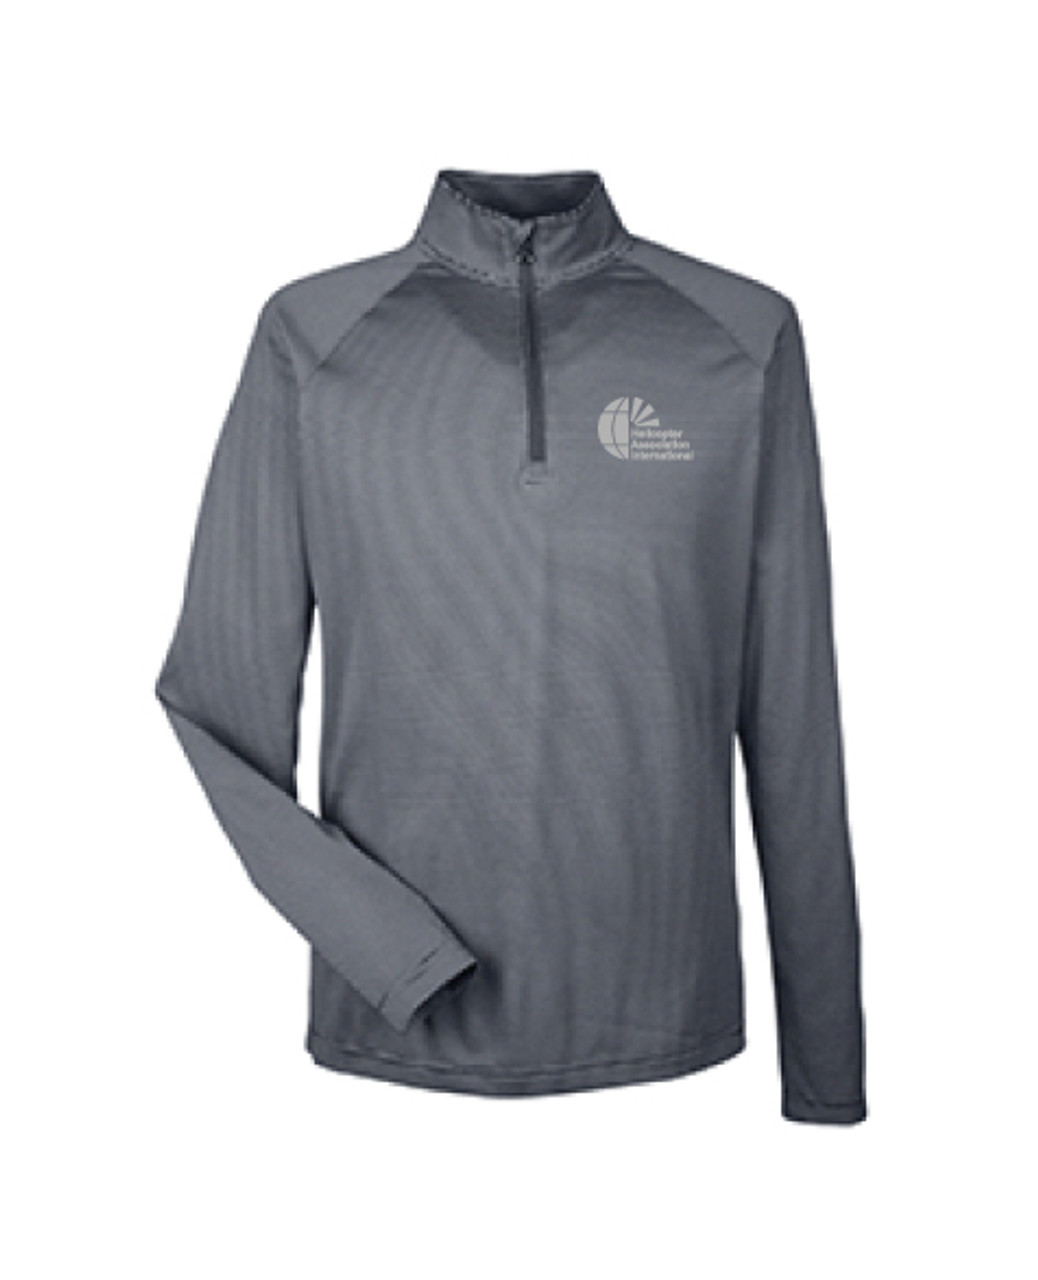 Mens Under Armour Tech Stripe Quarter Zip Pullover